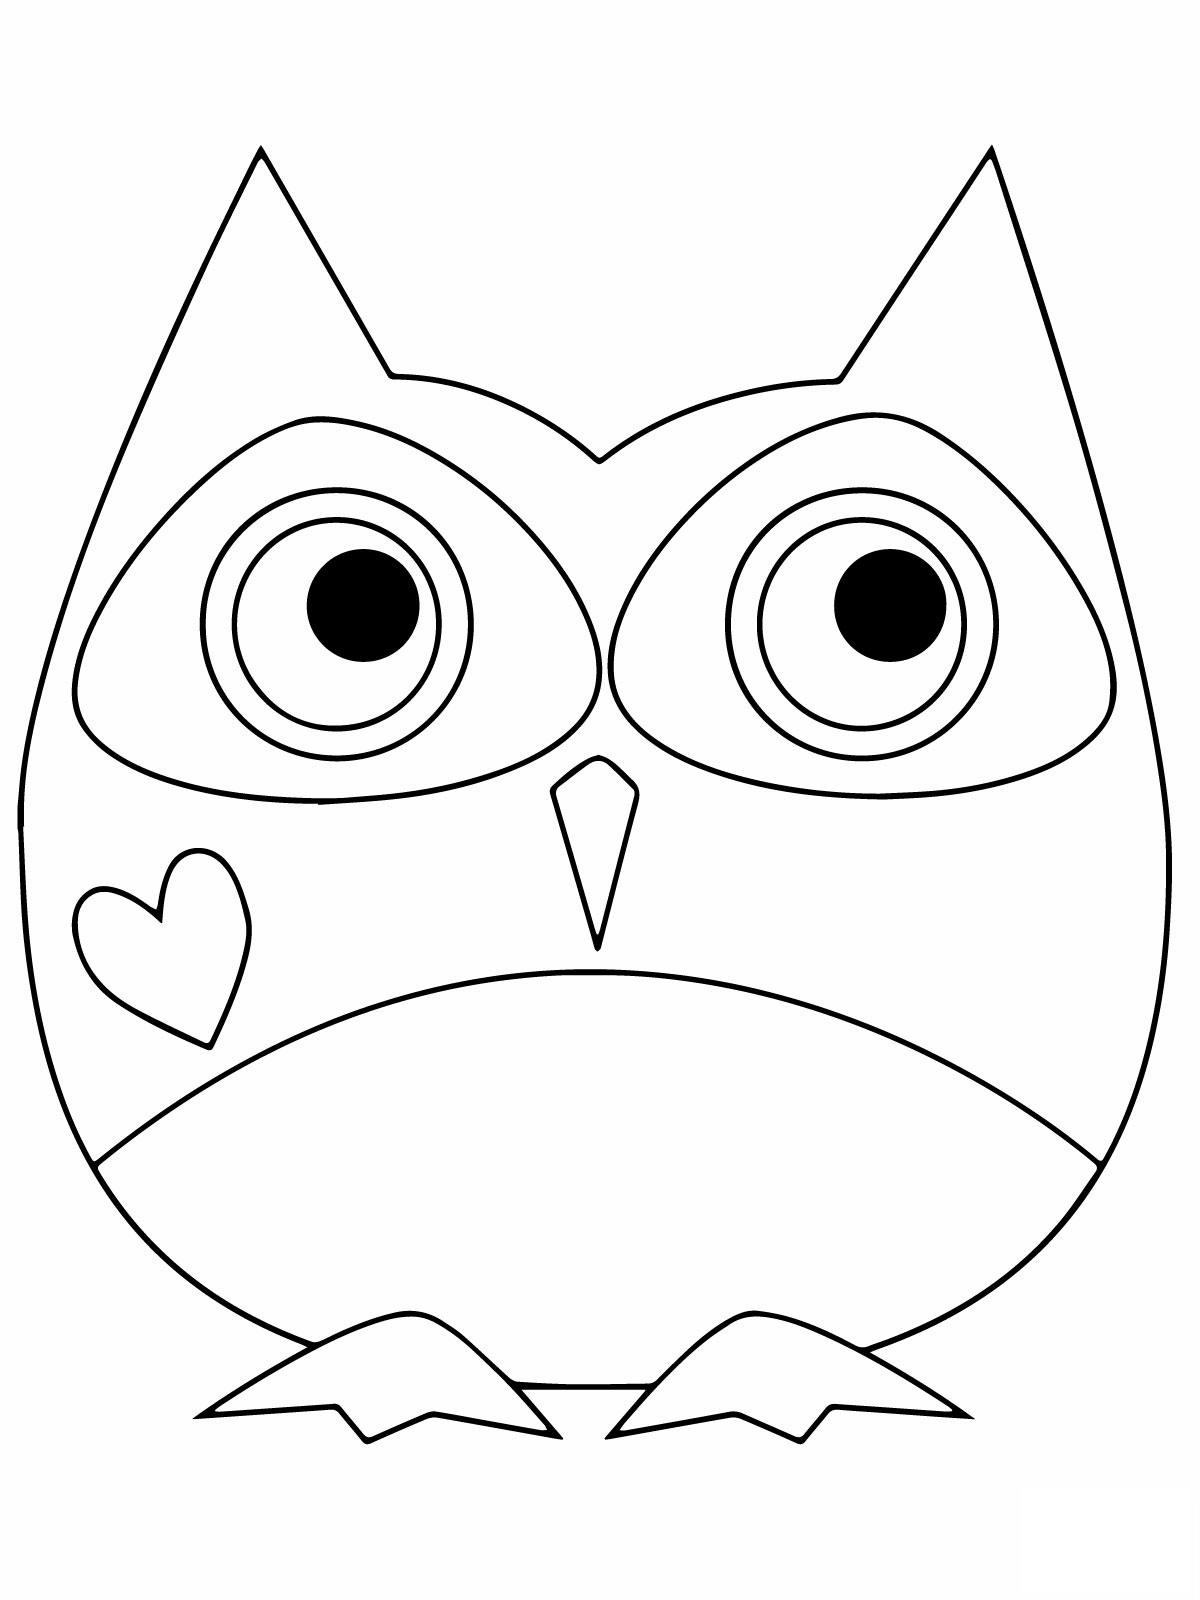 owl printable coloring pages best printable owl coloring pages for adults ruby website printable owl coloring pages